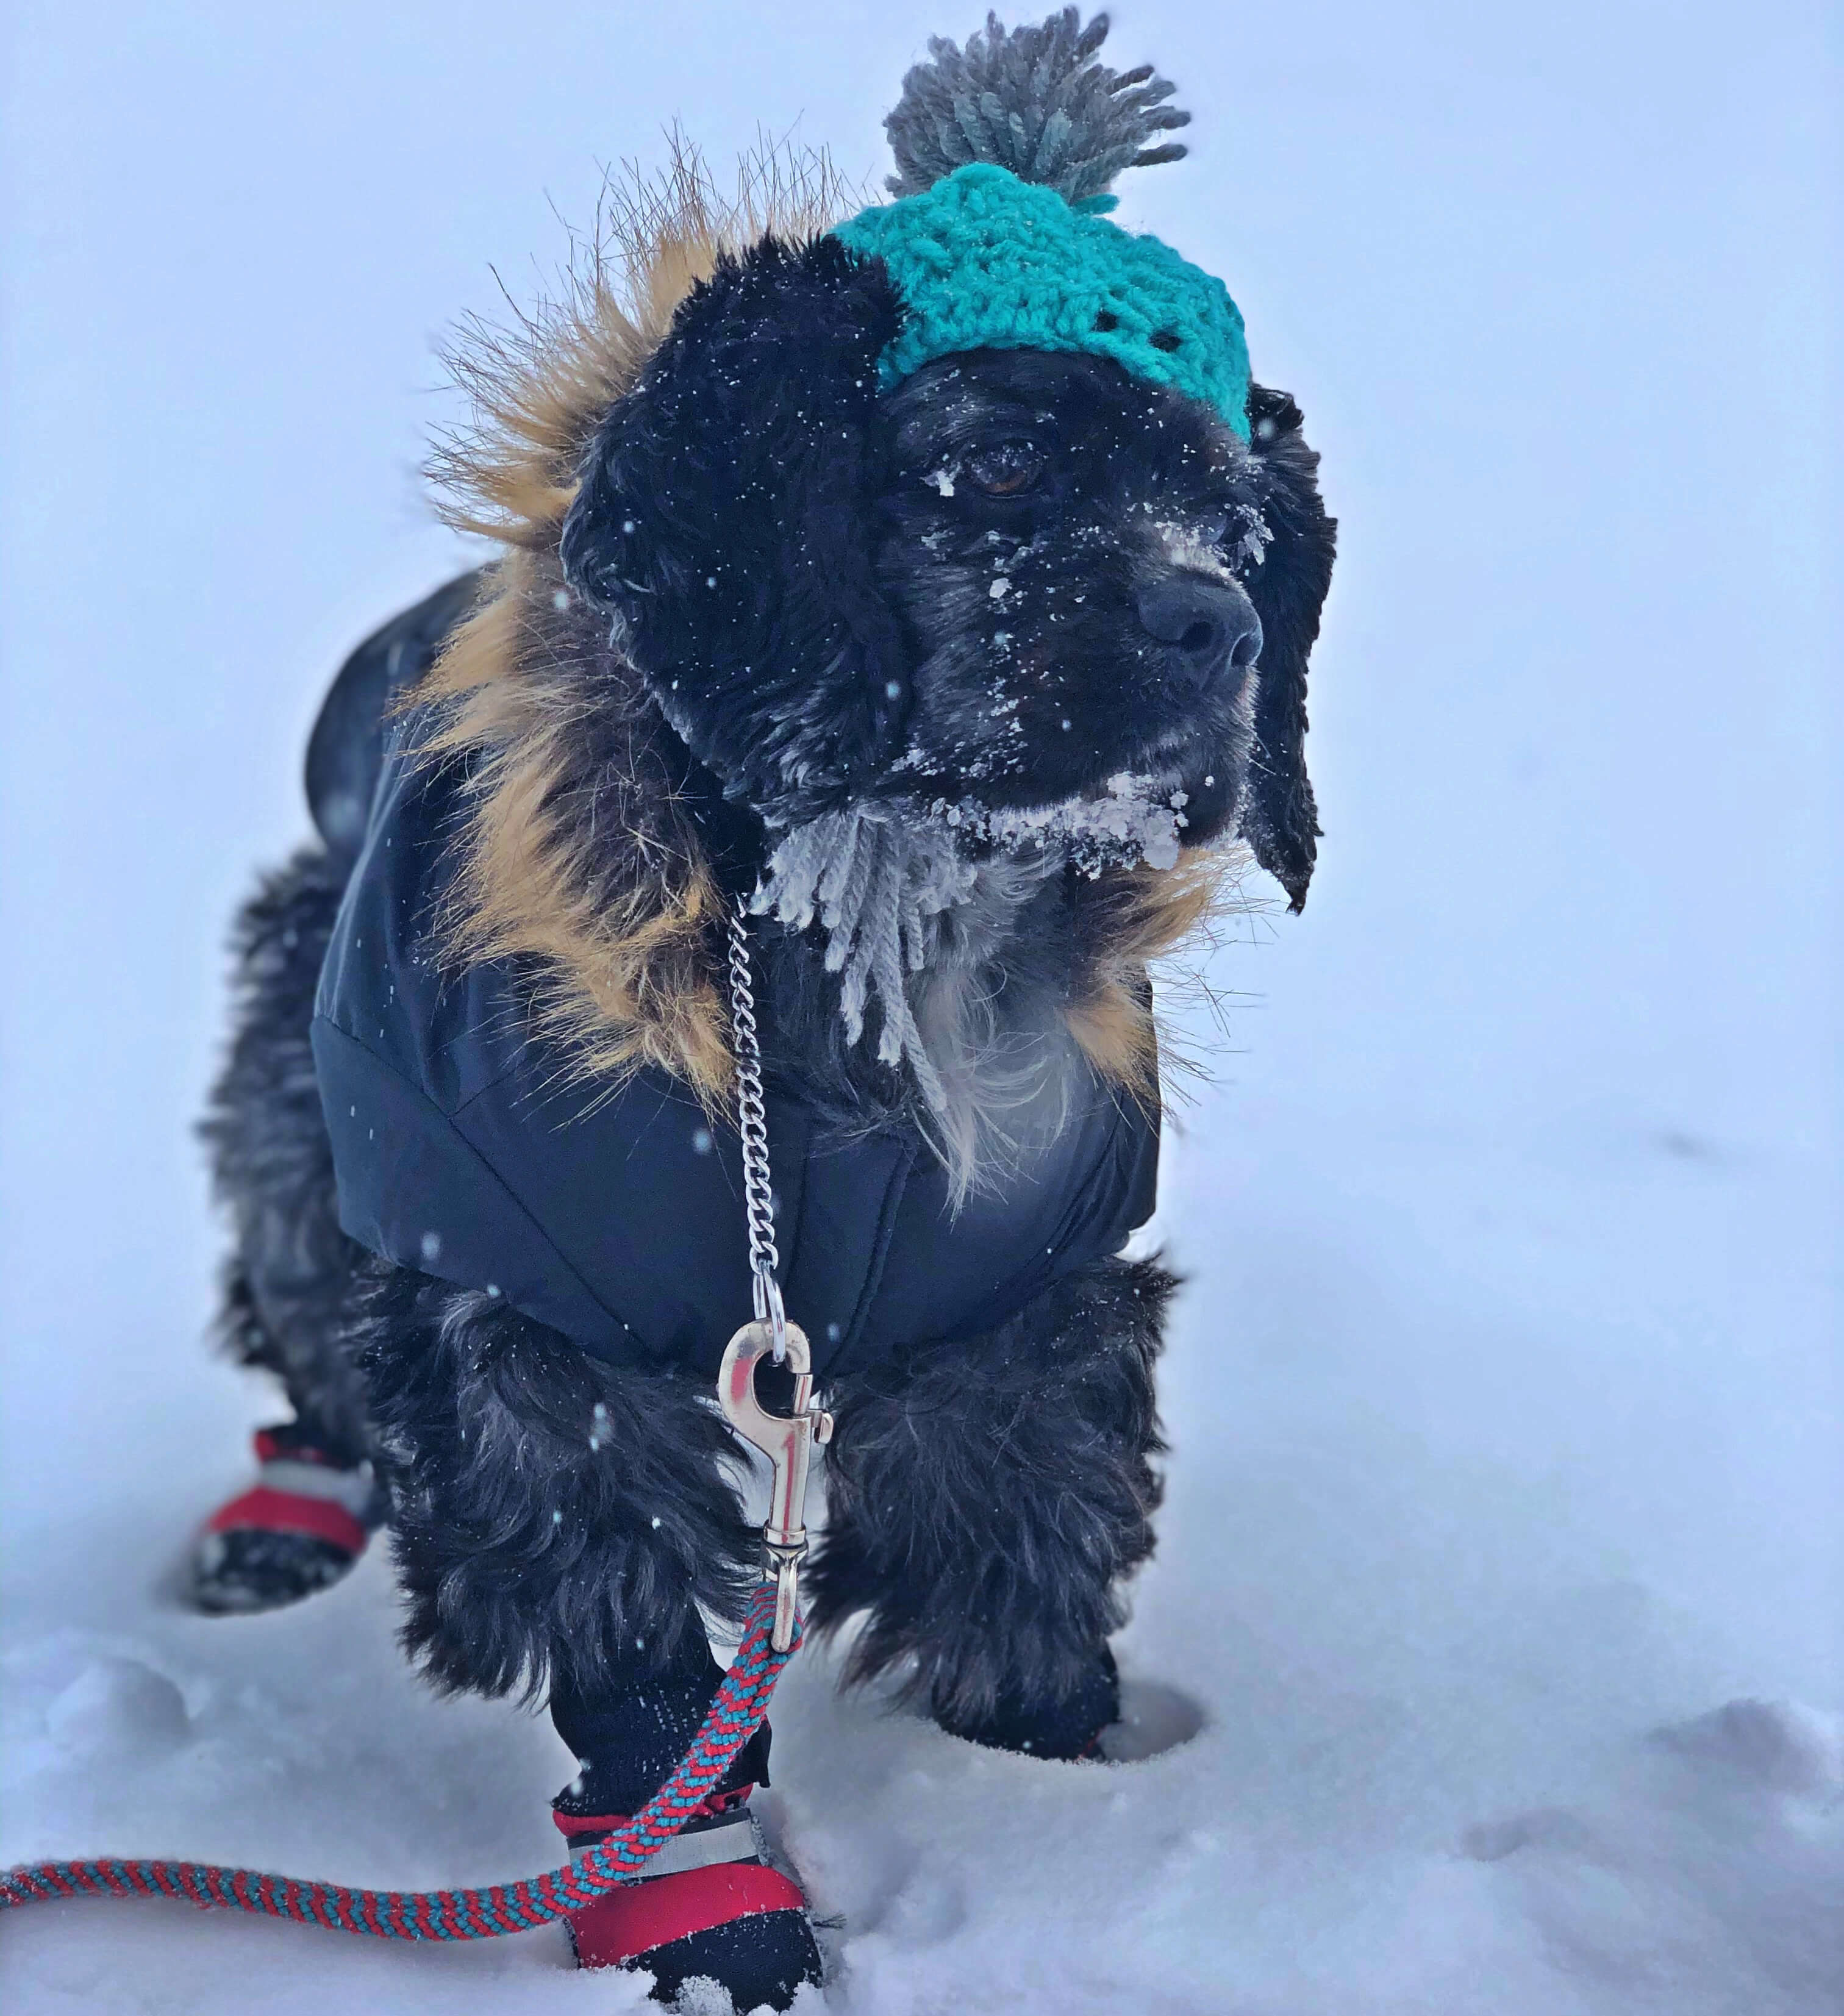 Cocker Spaniel wearing winter jacket and boots sitting in the snow